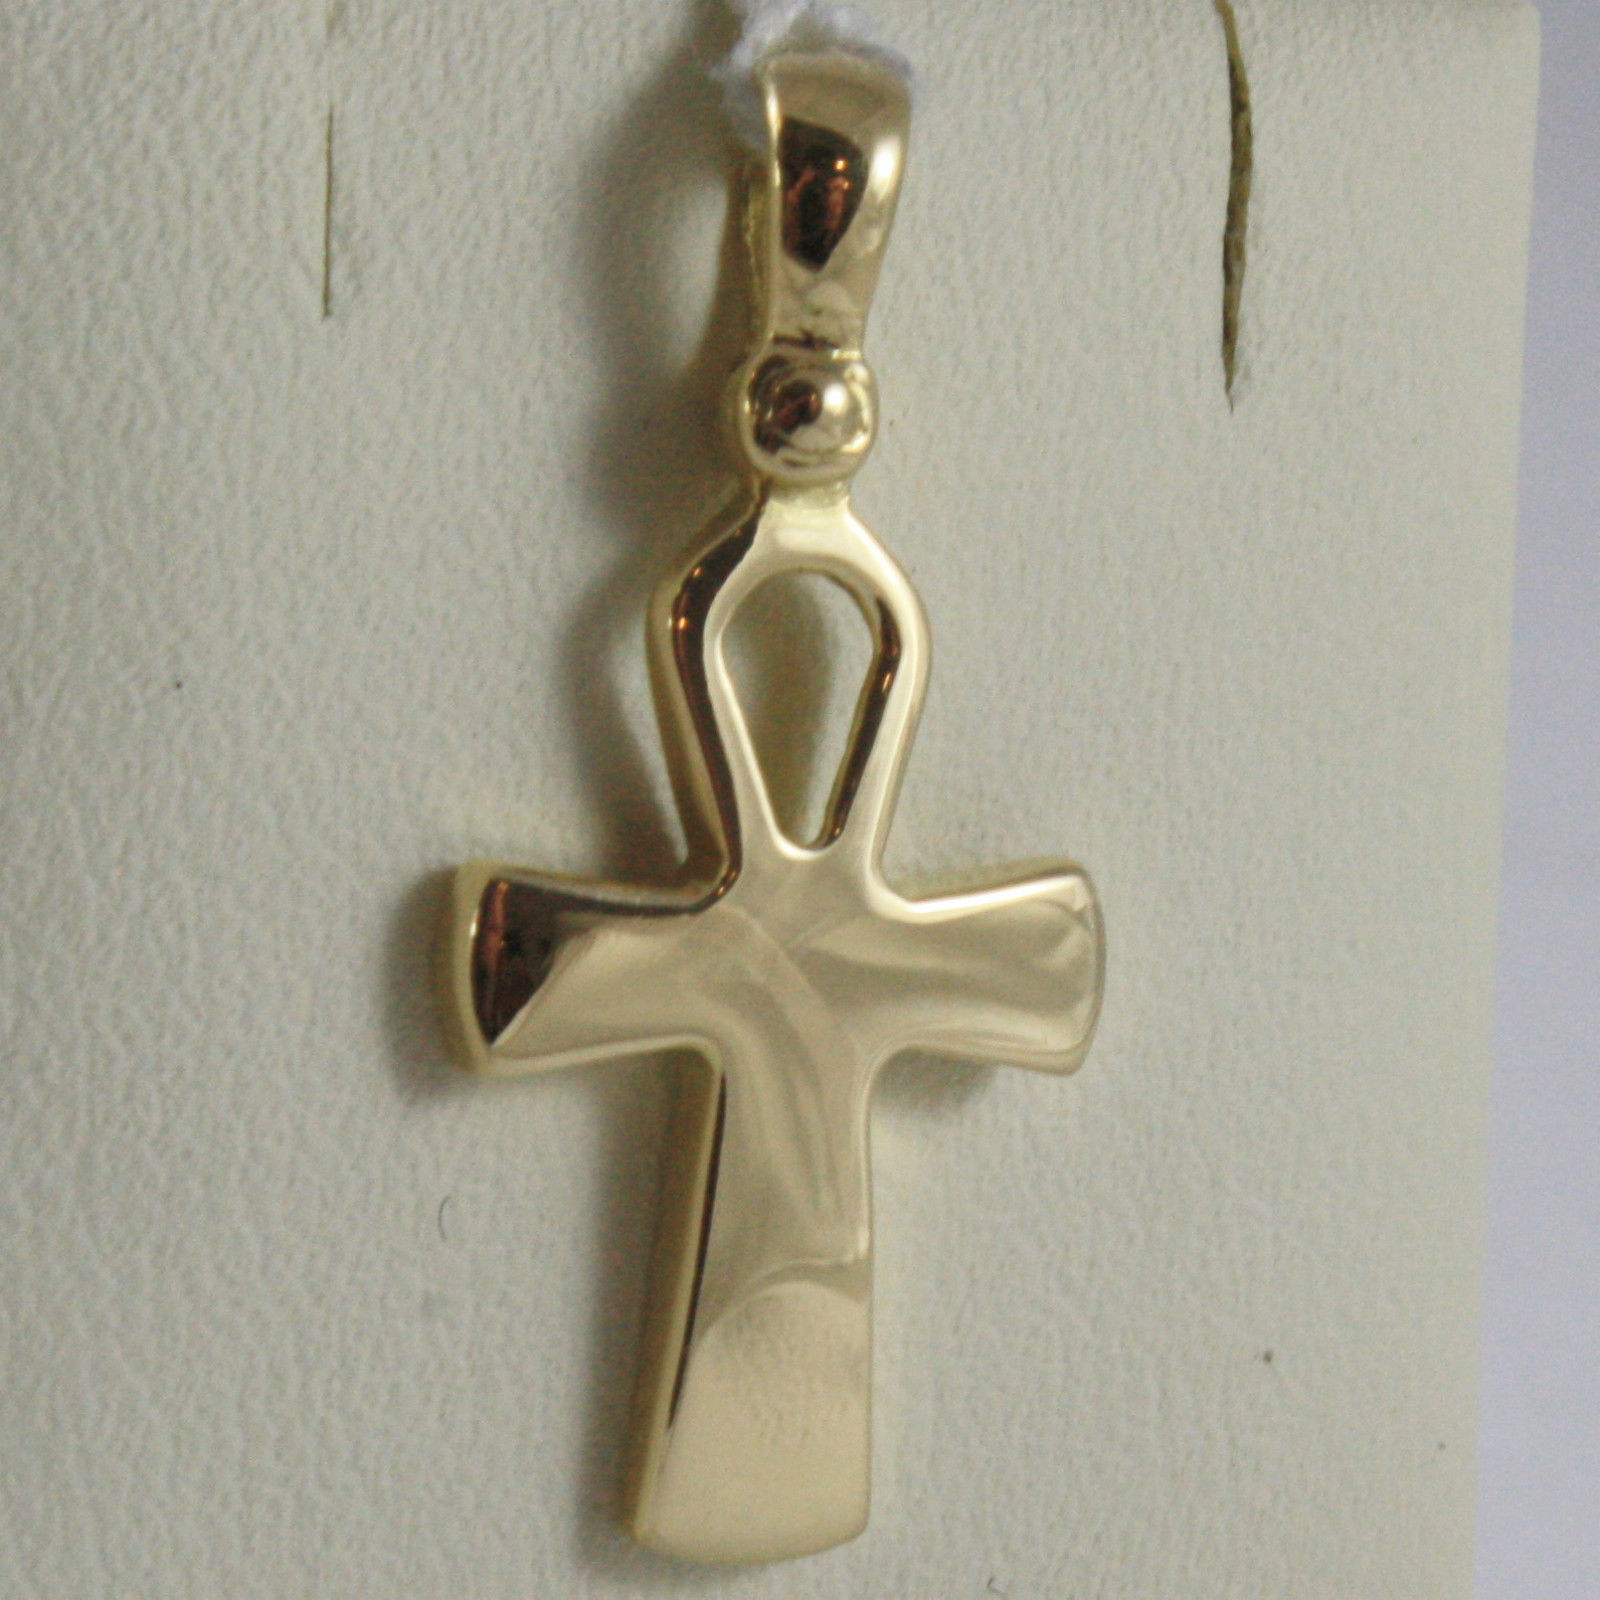 SOLID 18K YELLOW GOLD CROSS, CROSS OF LIFE, ANKH, SHINY, 1.02 INCH MADE IN ITALY